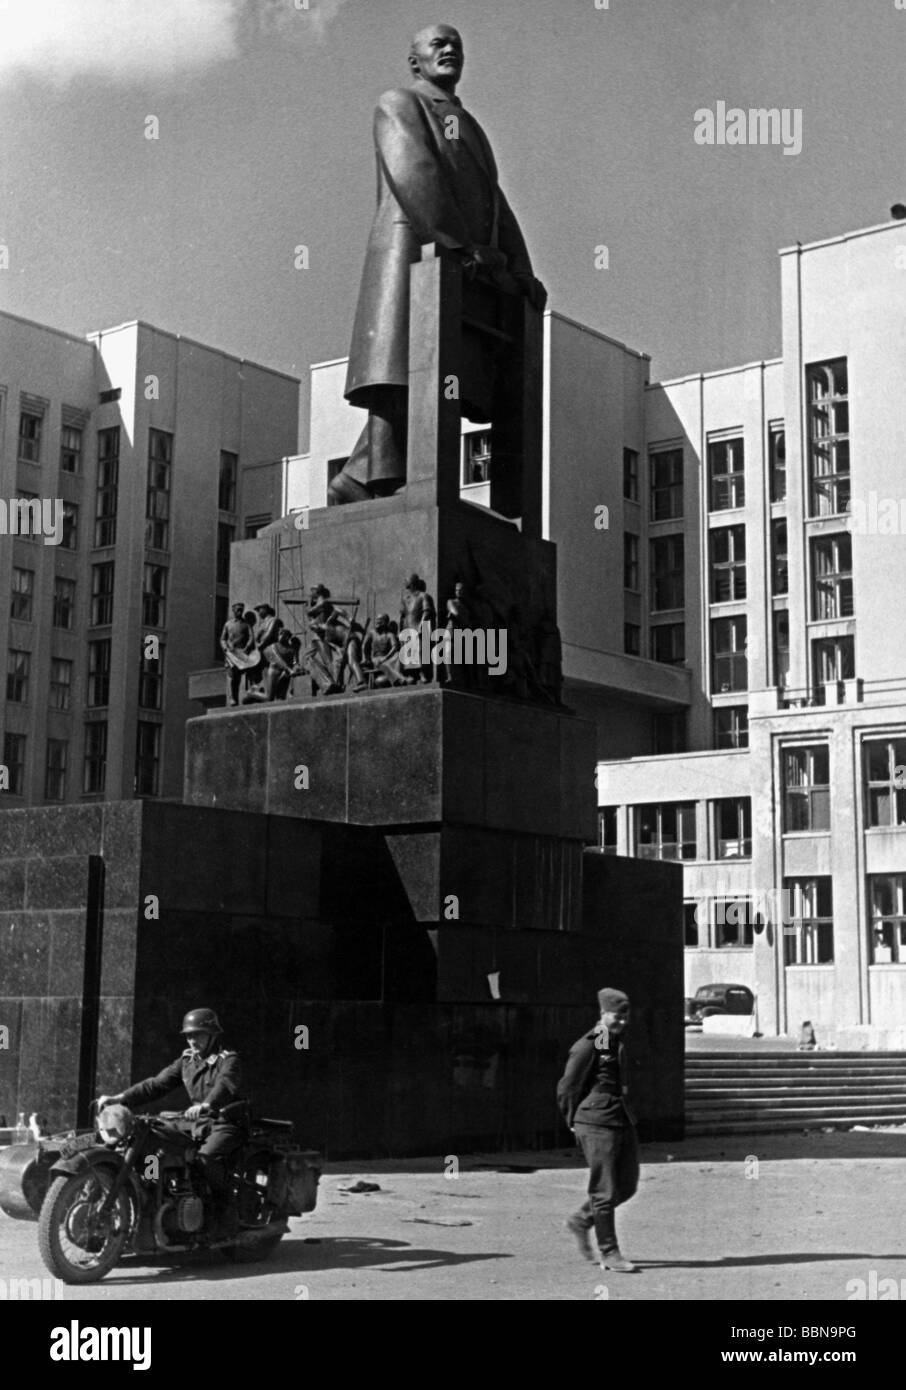 events, Second World War / WWII, Russia 1941, Luftwaffe soldiers in front of the Lenin monument in Minsk, 23.7.1941, Stock Photo